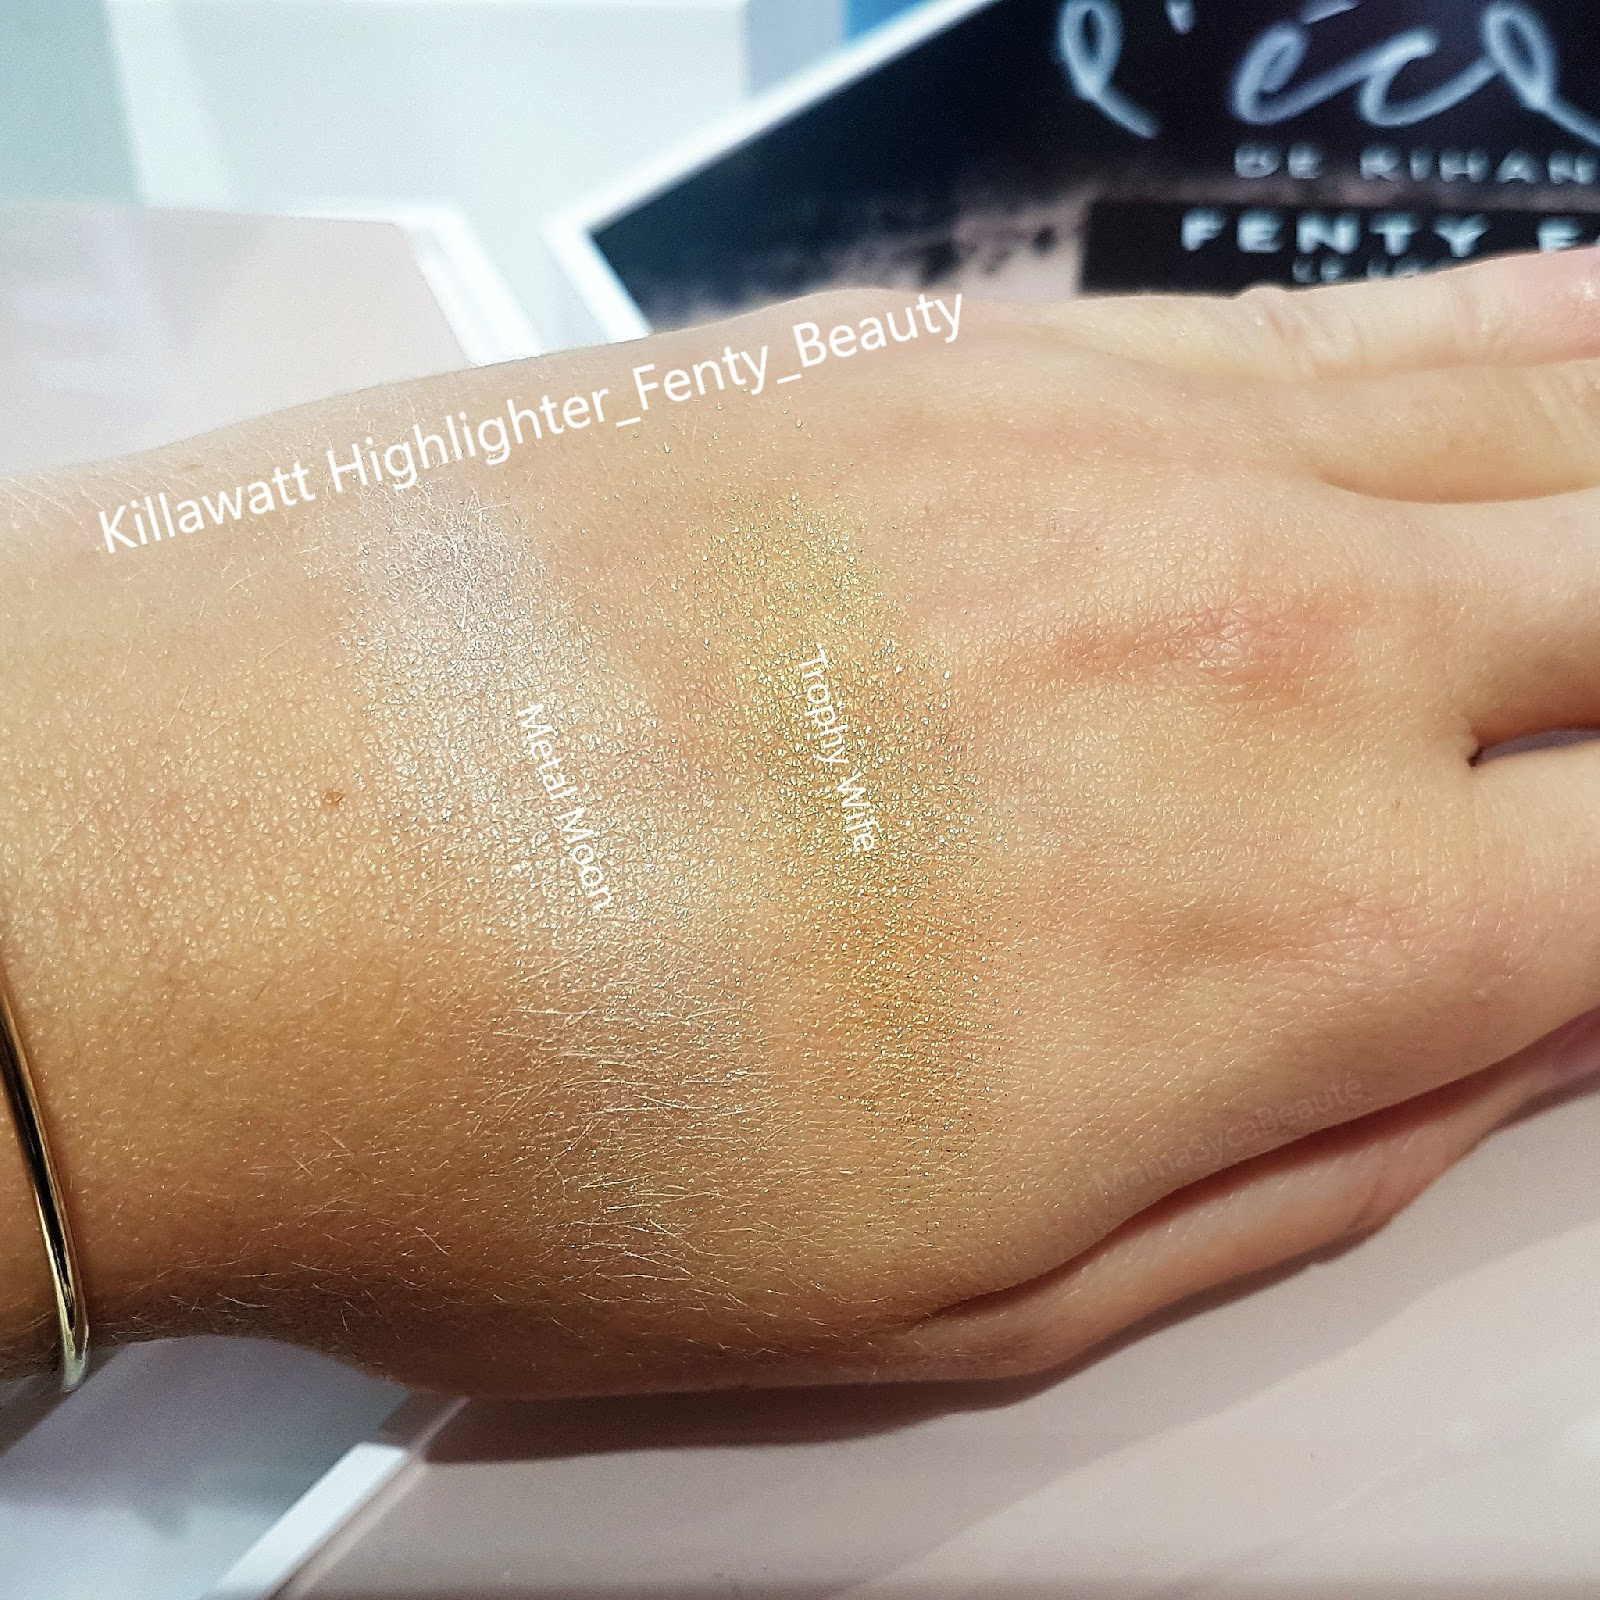 revue-fenty-beauty-killawatt-freestyle-highlighter-swatch_sephora_code_promo_mama_syca_beaute